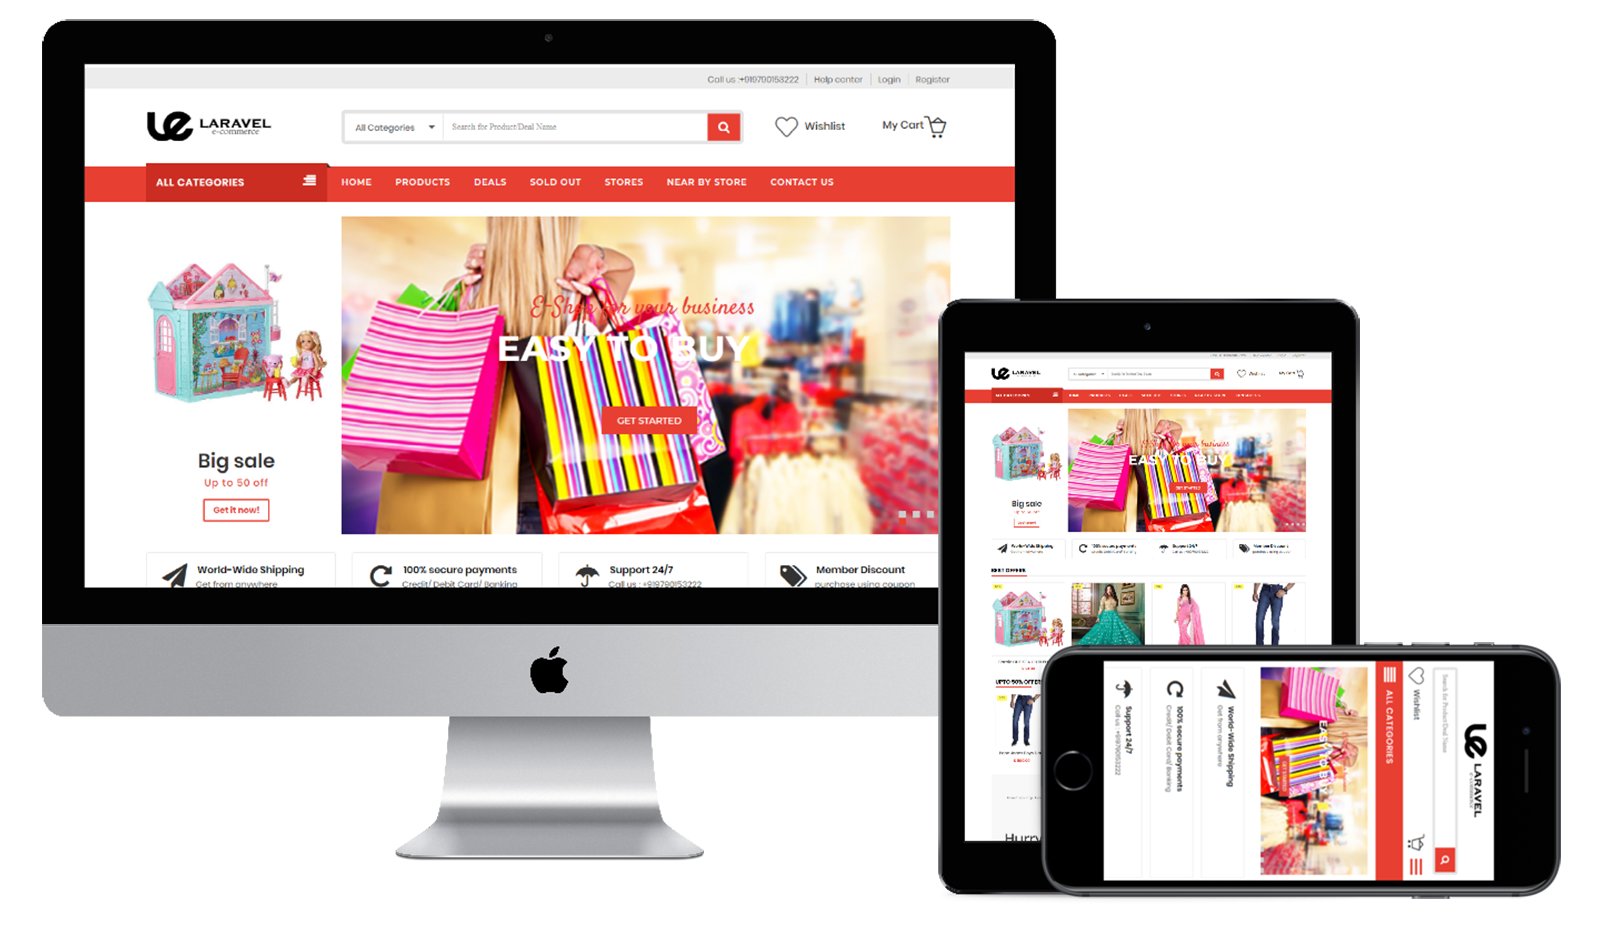 ecommerce website and digital marketing mobile app development web development company in India Uk Dubai